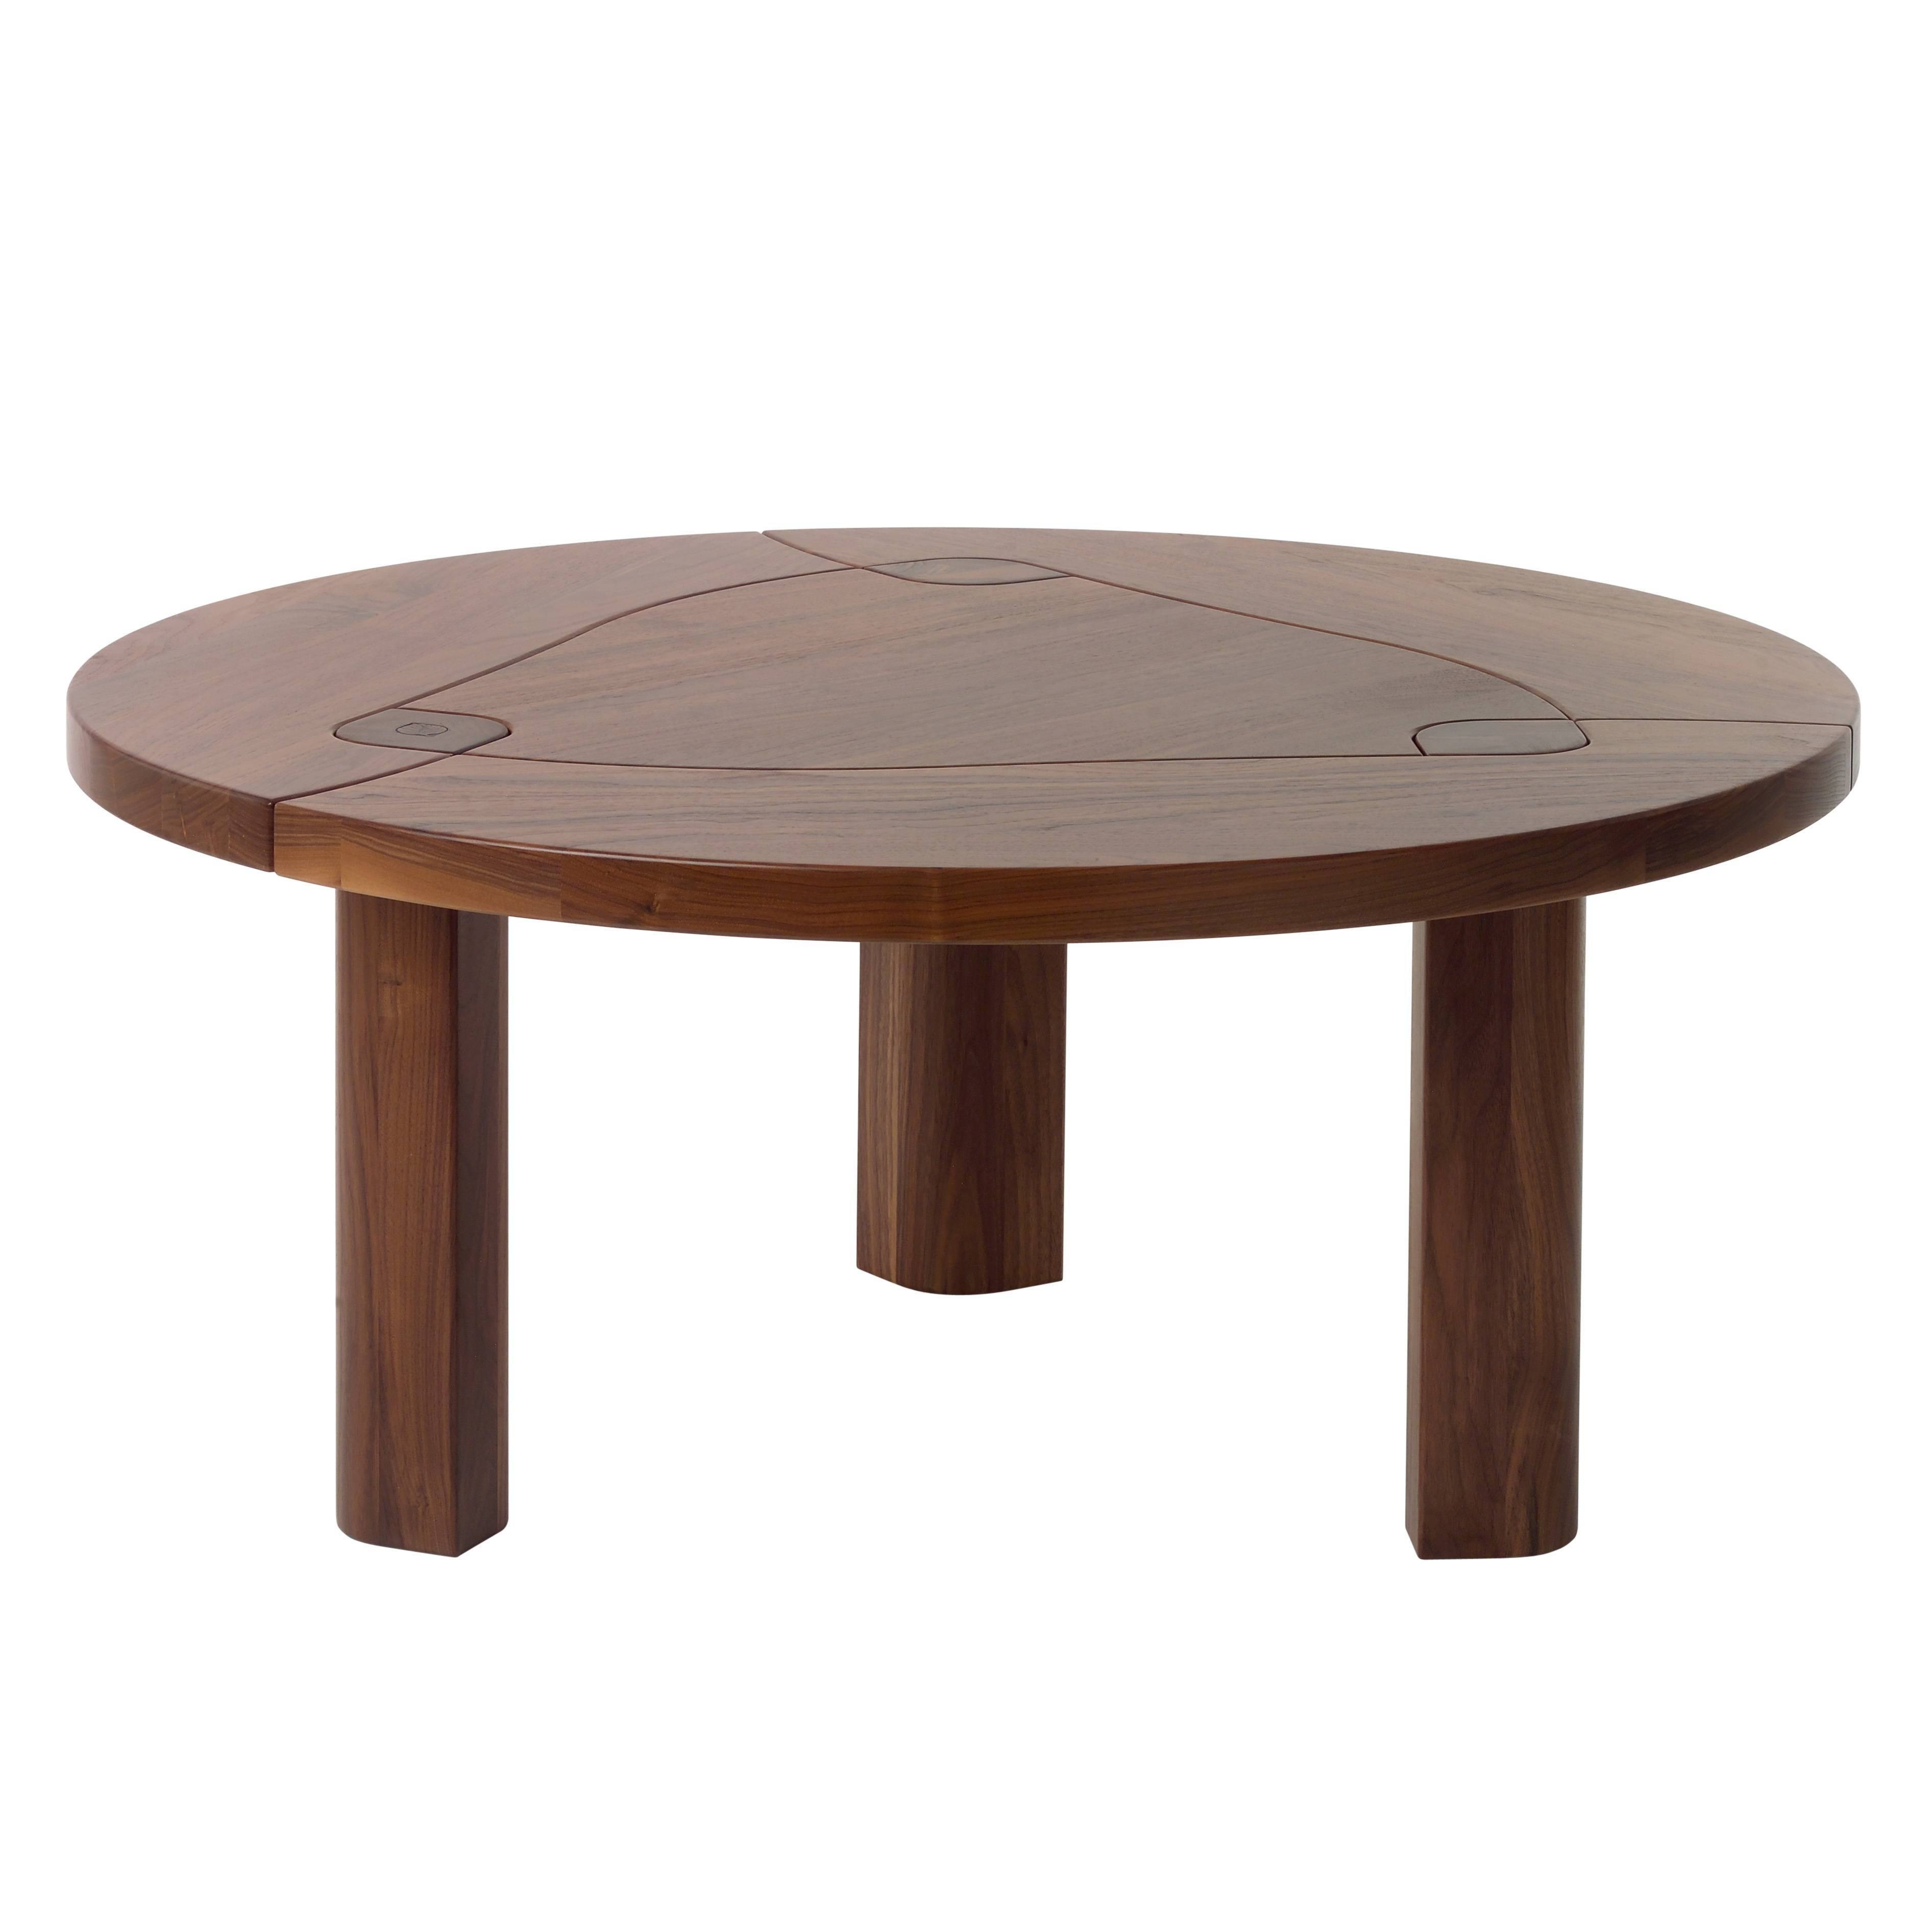 Coffee Table Oak Glass Tables John Lewis Round Australia in Round Oak Coffee Tables (Image 4 of 30)